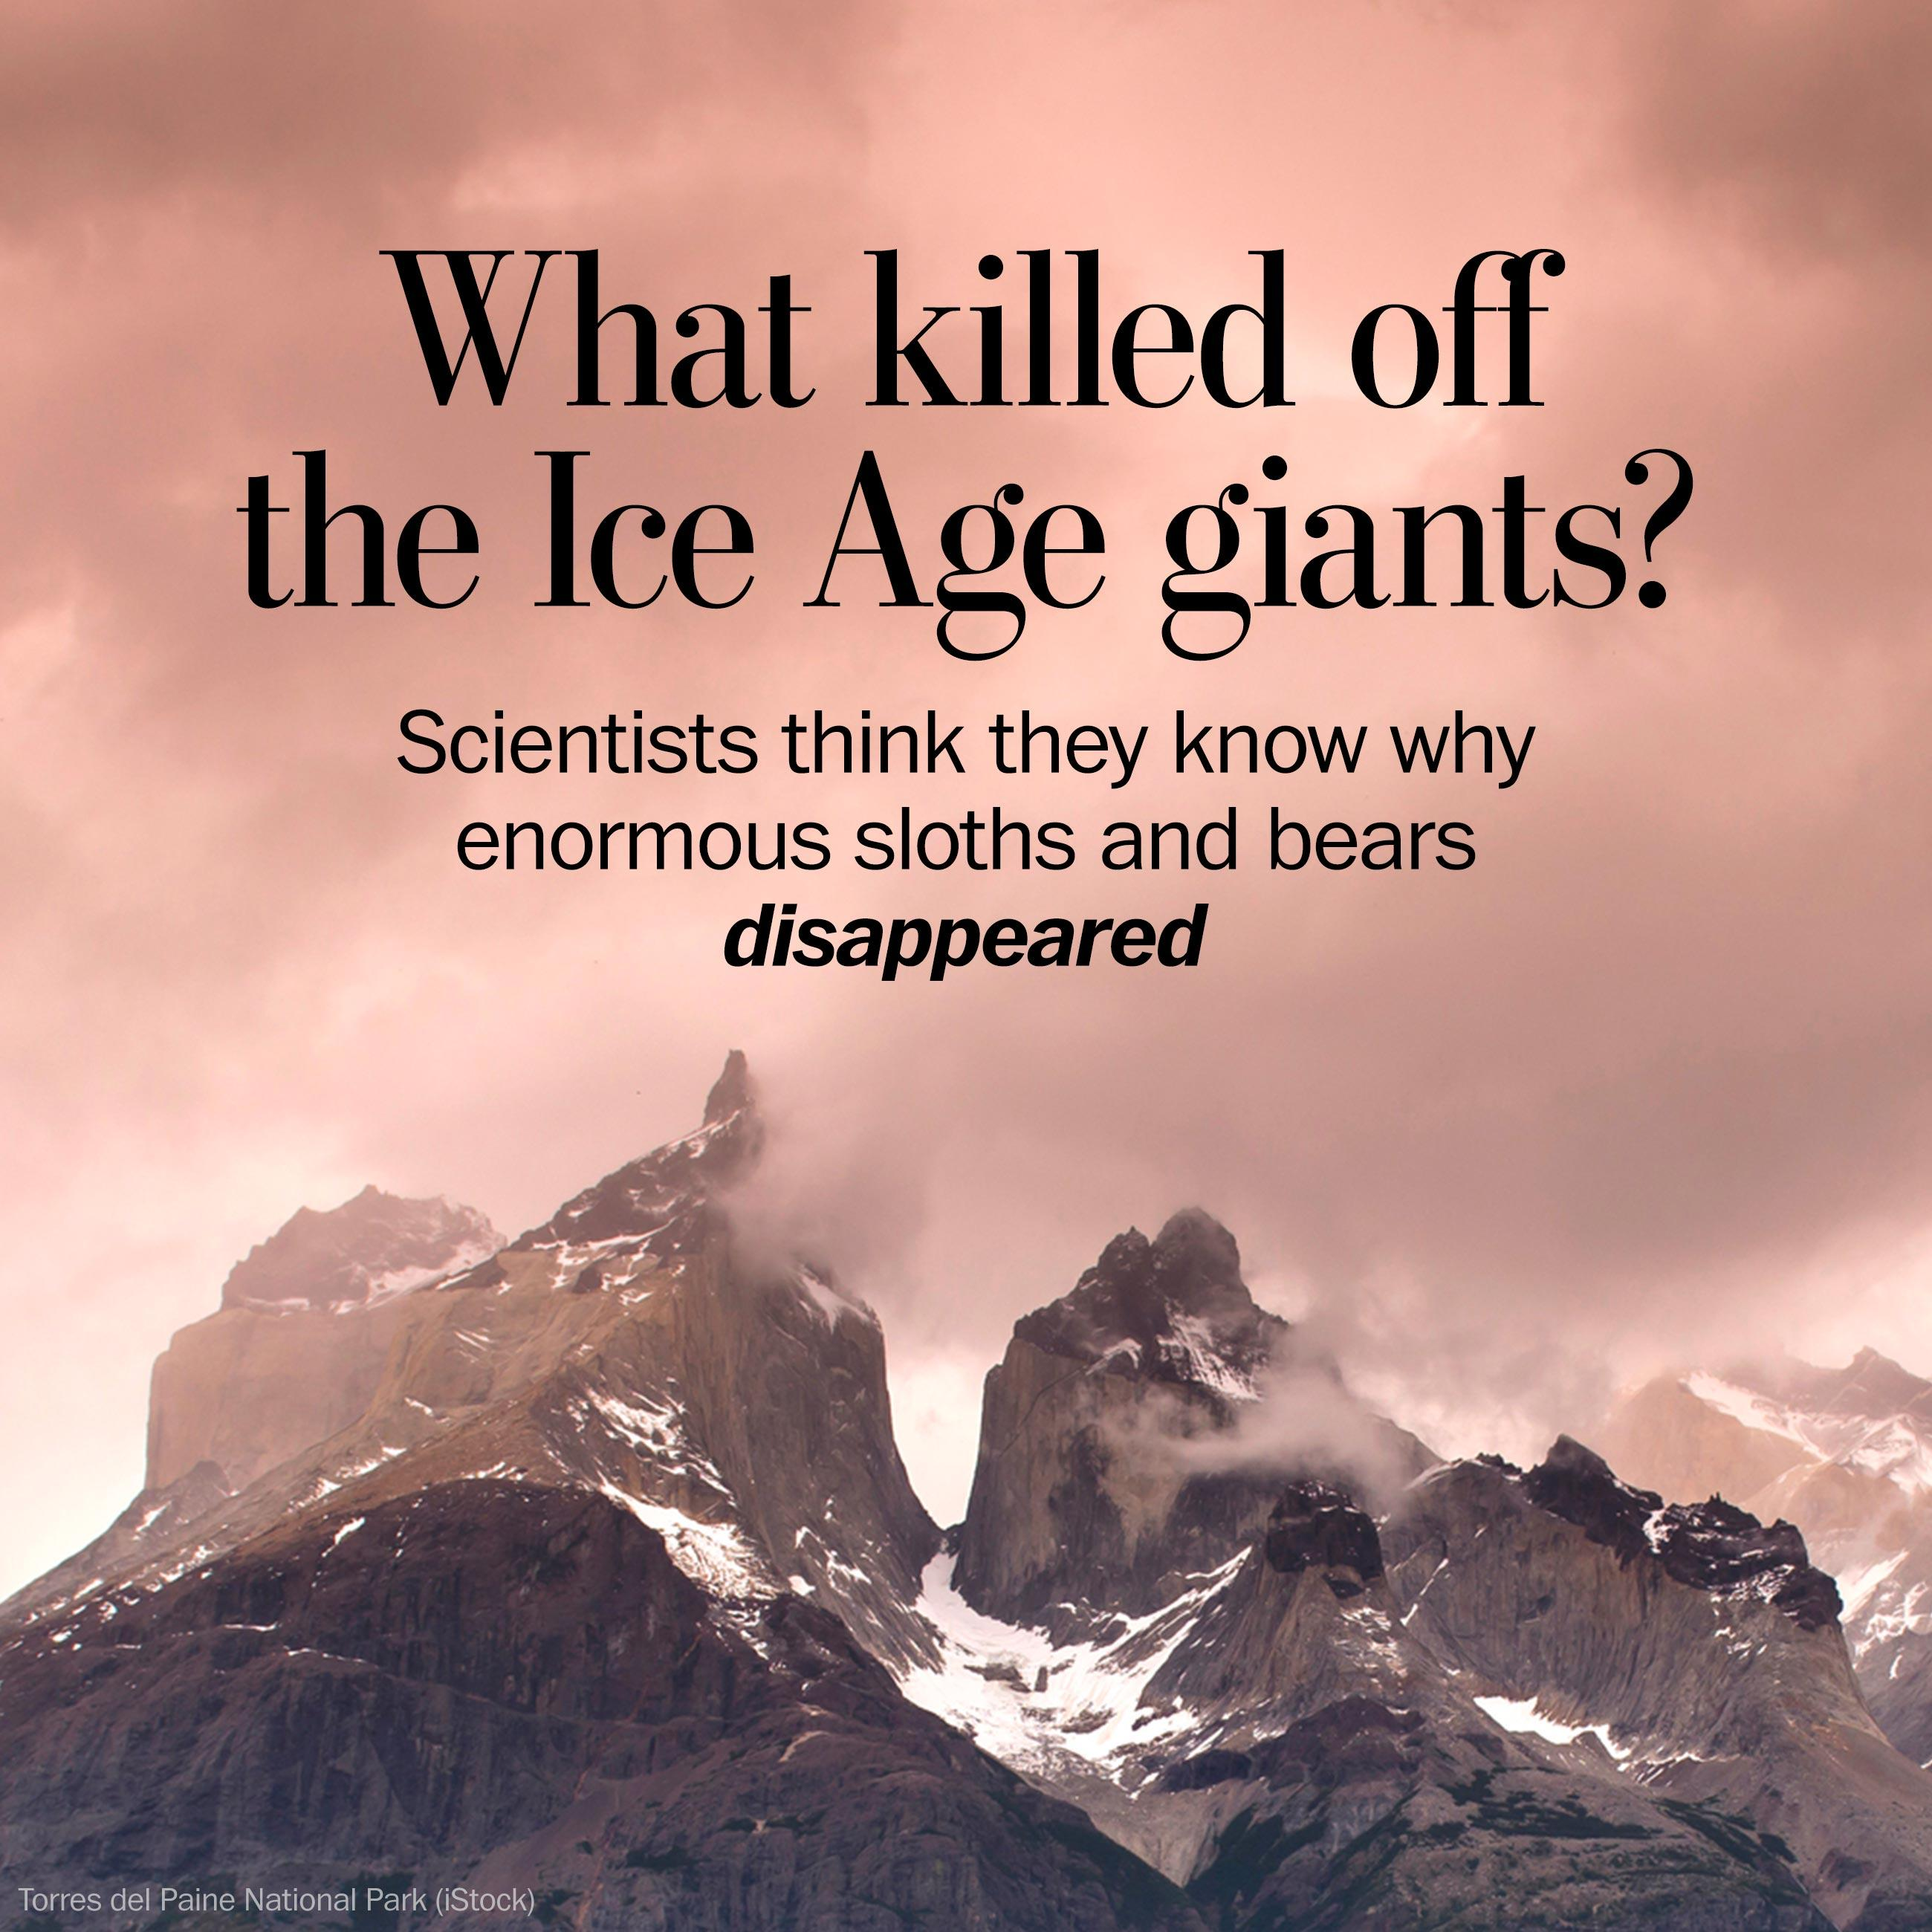 A catastrophic collision of human hunters and climate change killed off the Ice Age giants